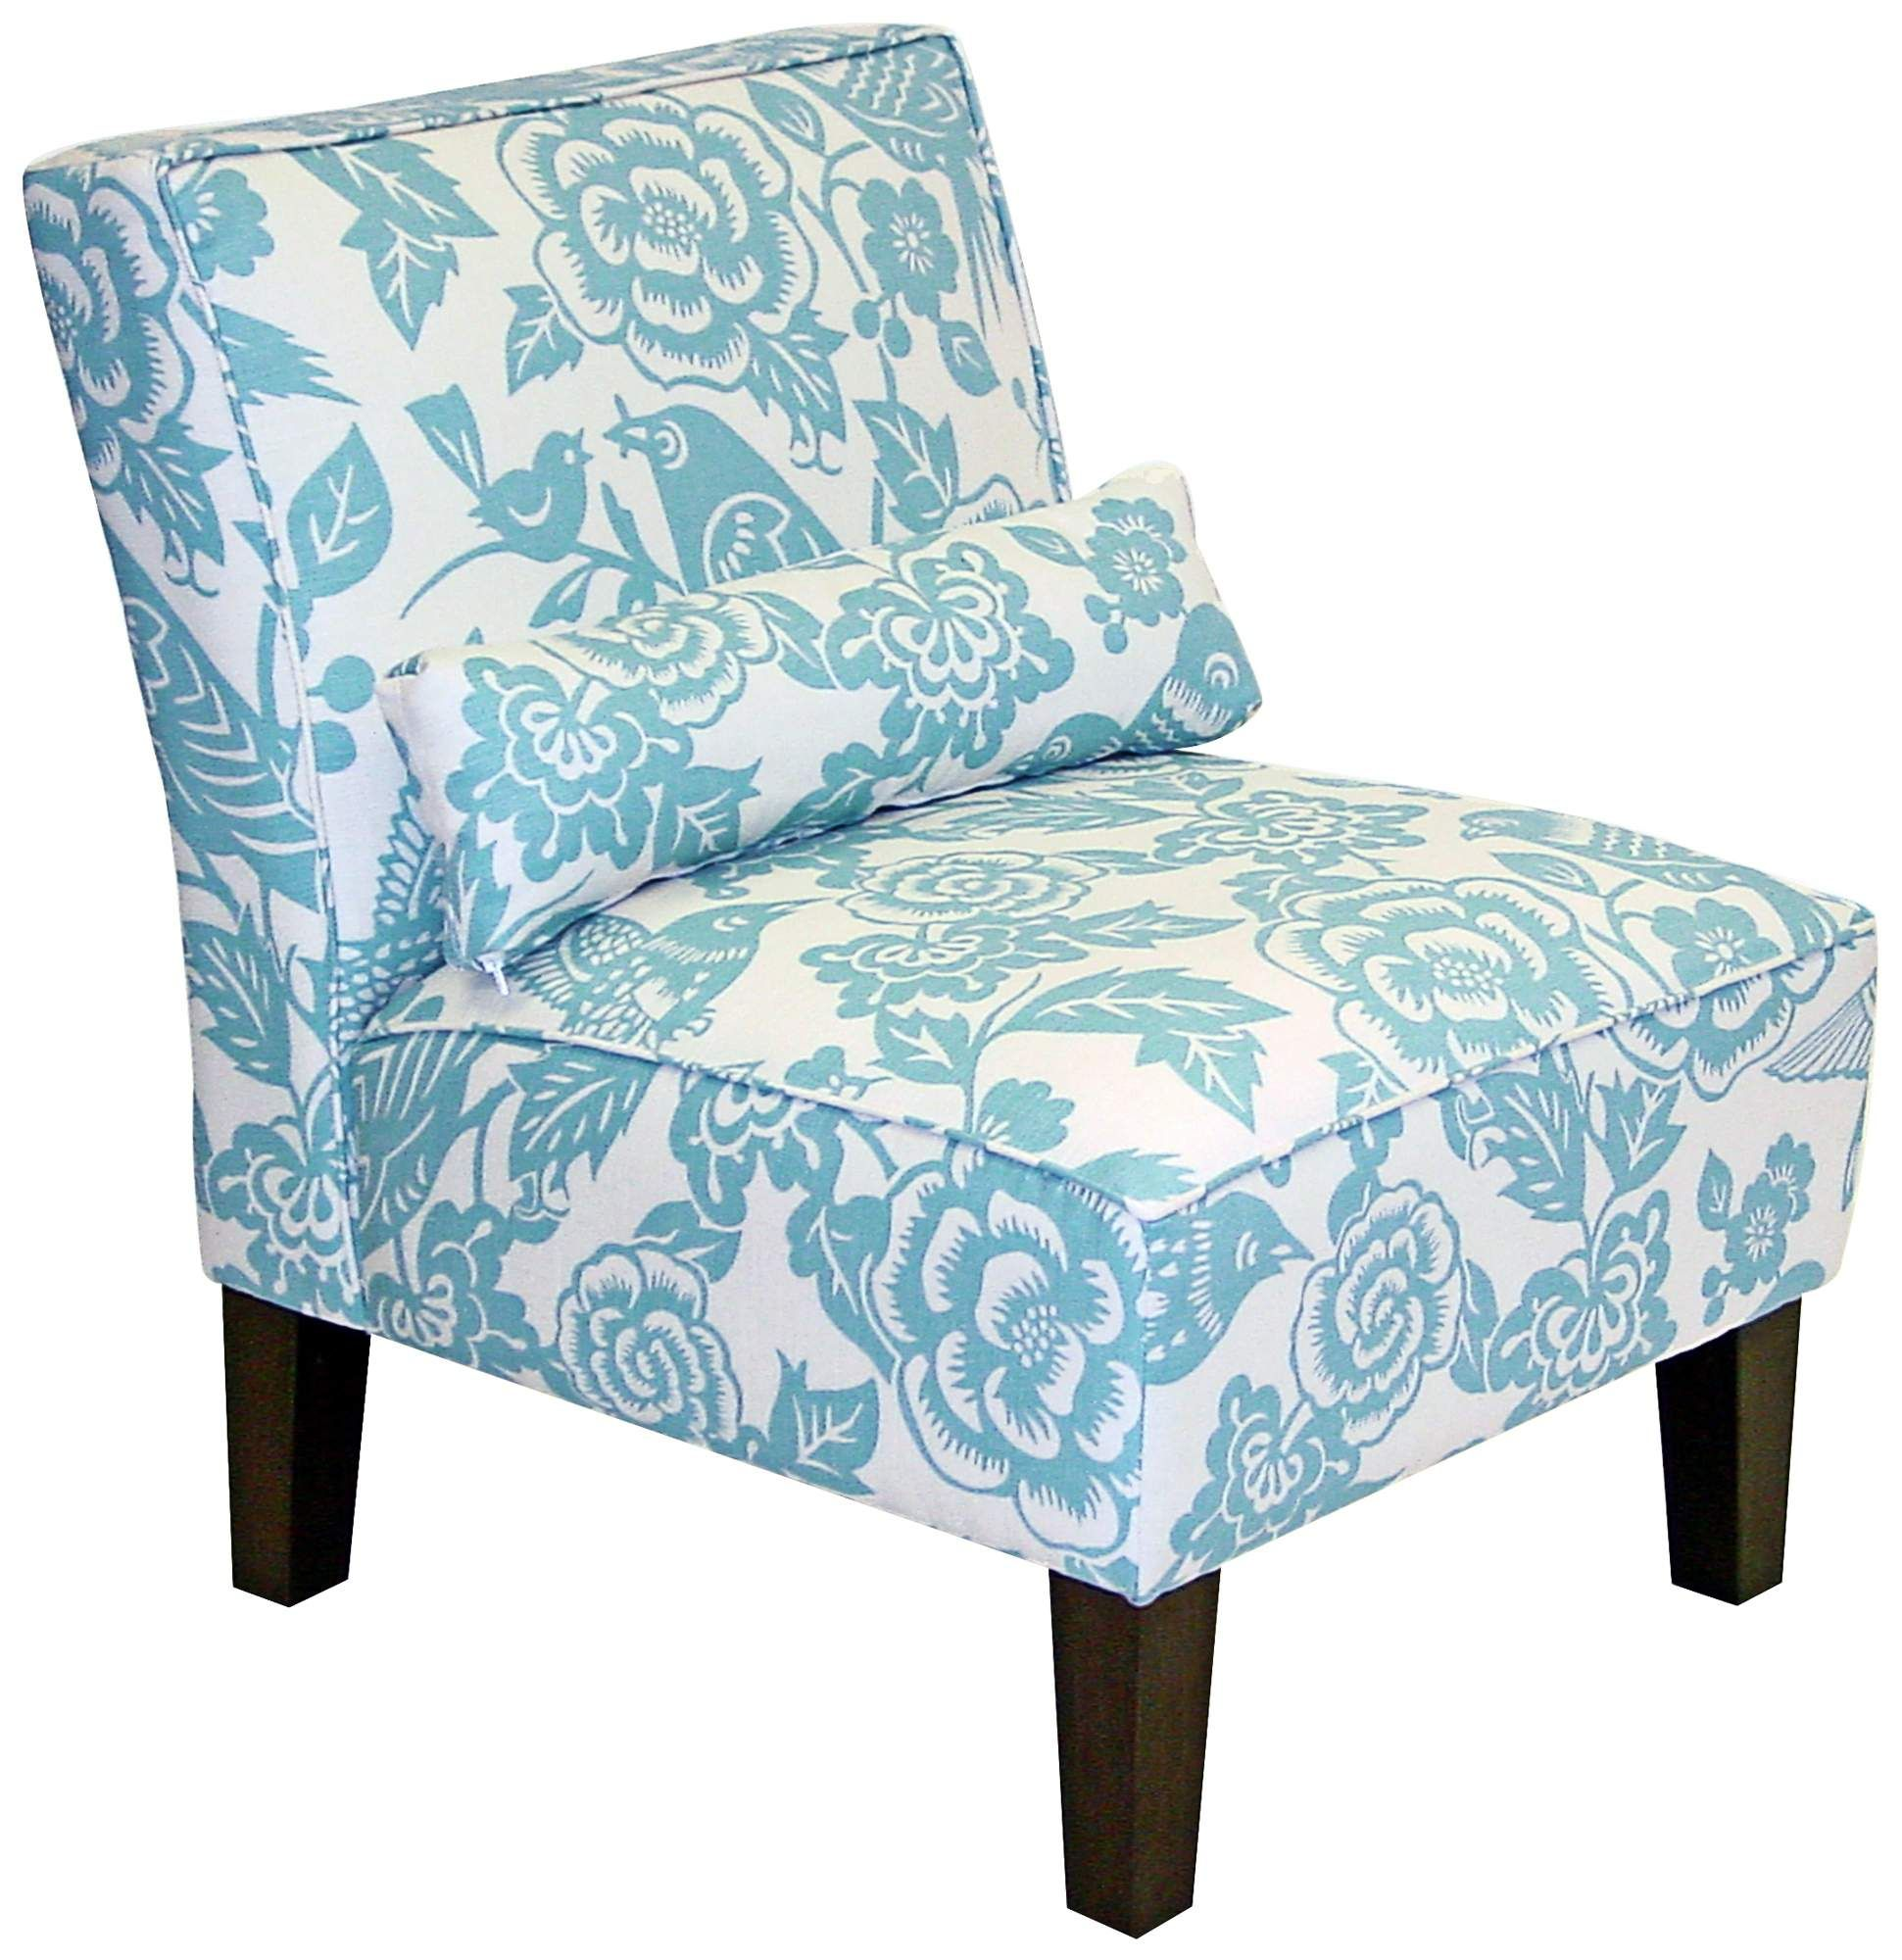 Sky Blue Floral and Canary Print Arm Chair